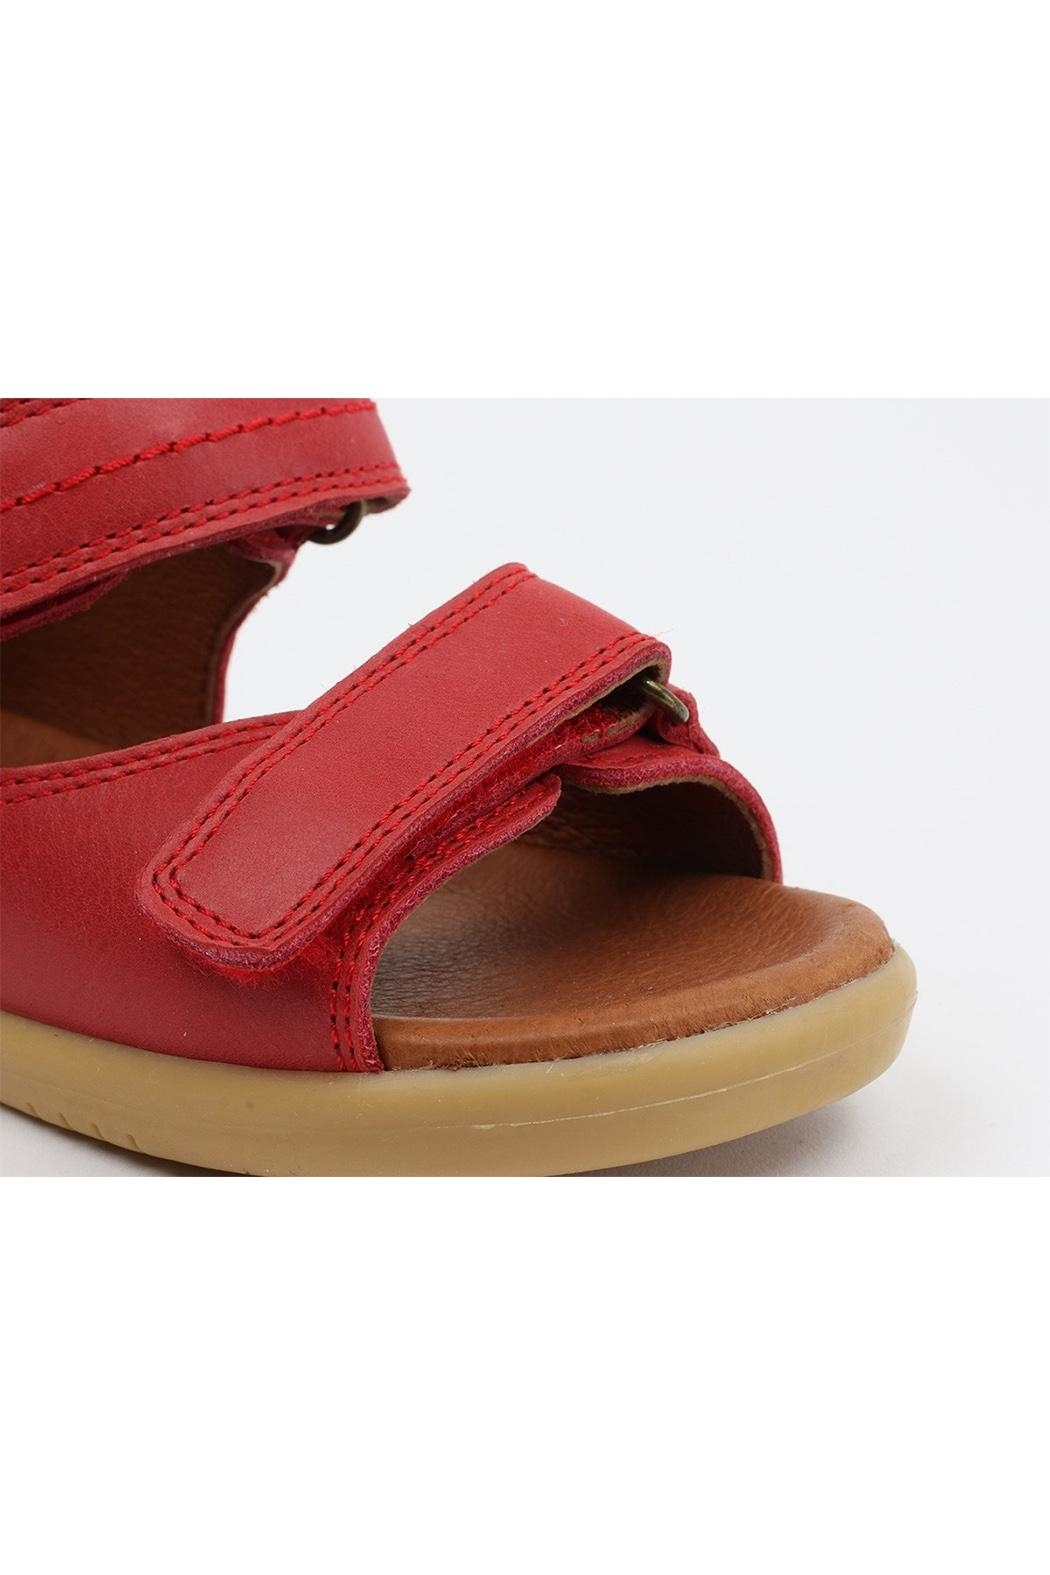 Bobux Unisex Driftwood Red-Sandals - Side Cropped Image